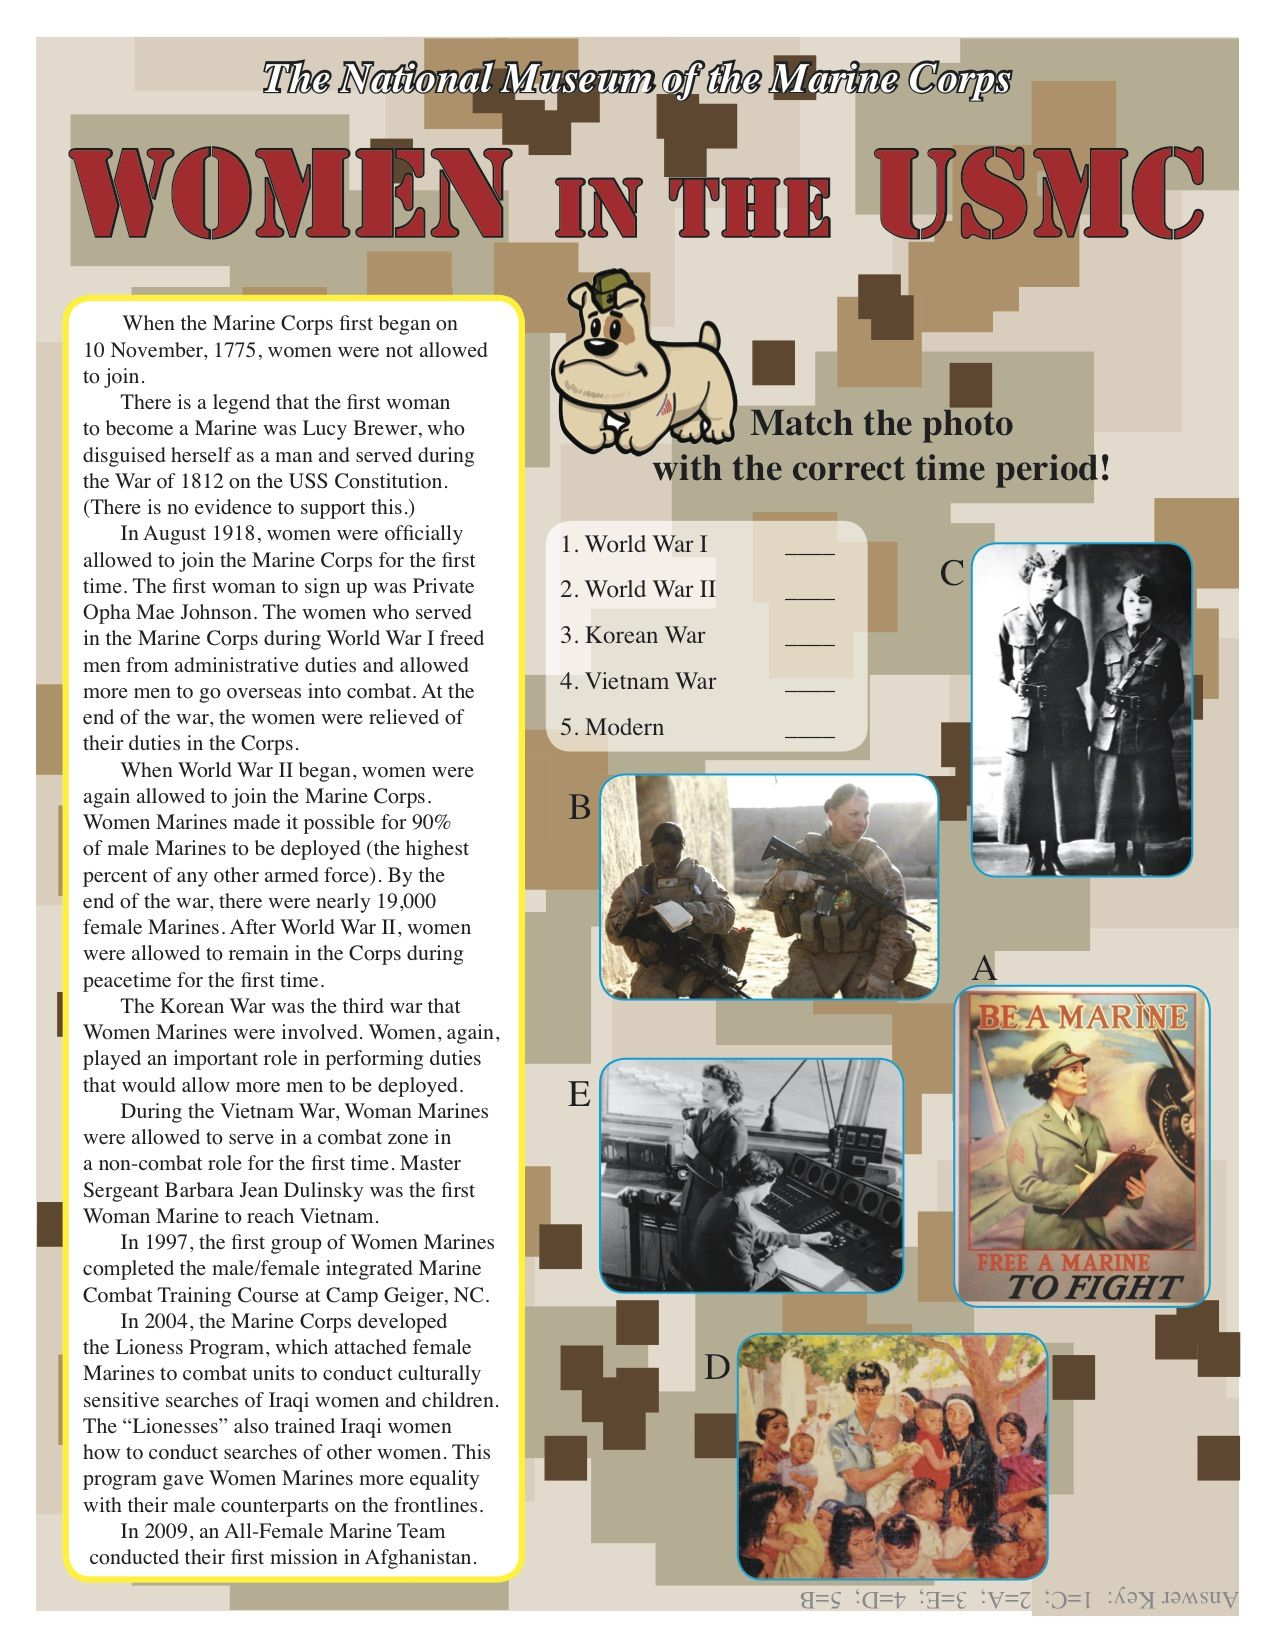 The United States Marine Corps Women In The Usmc